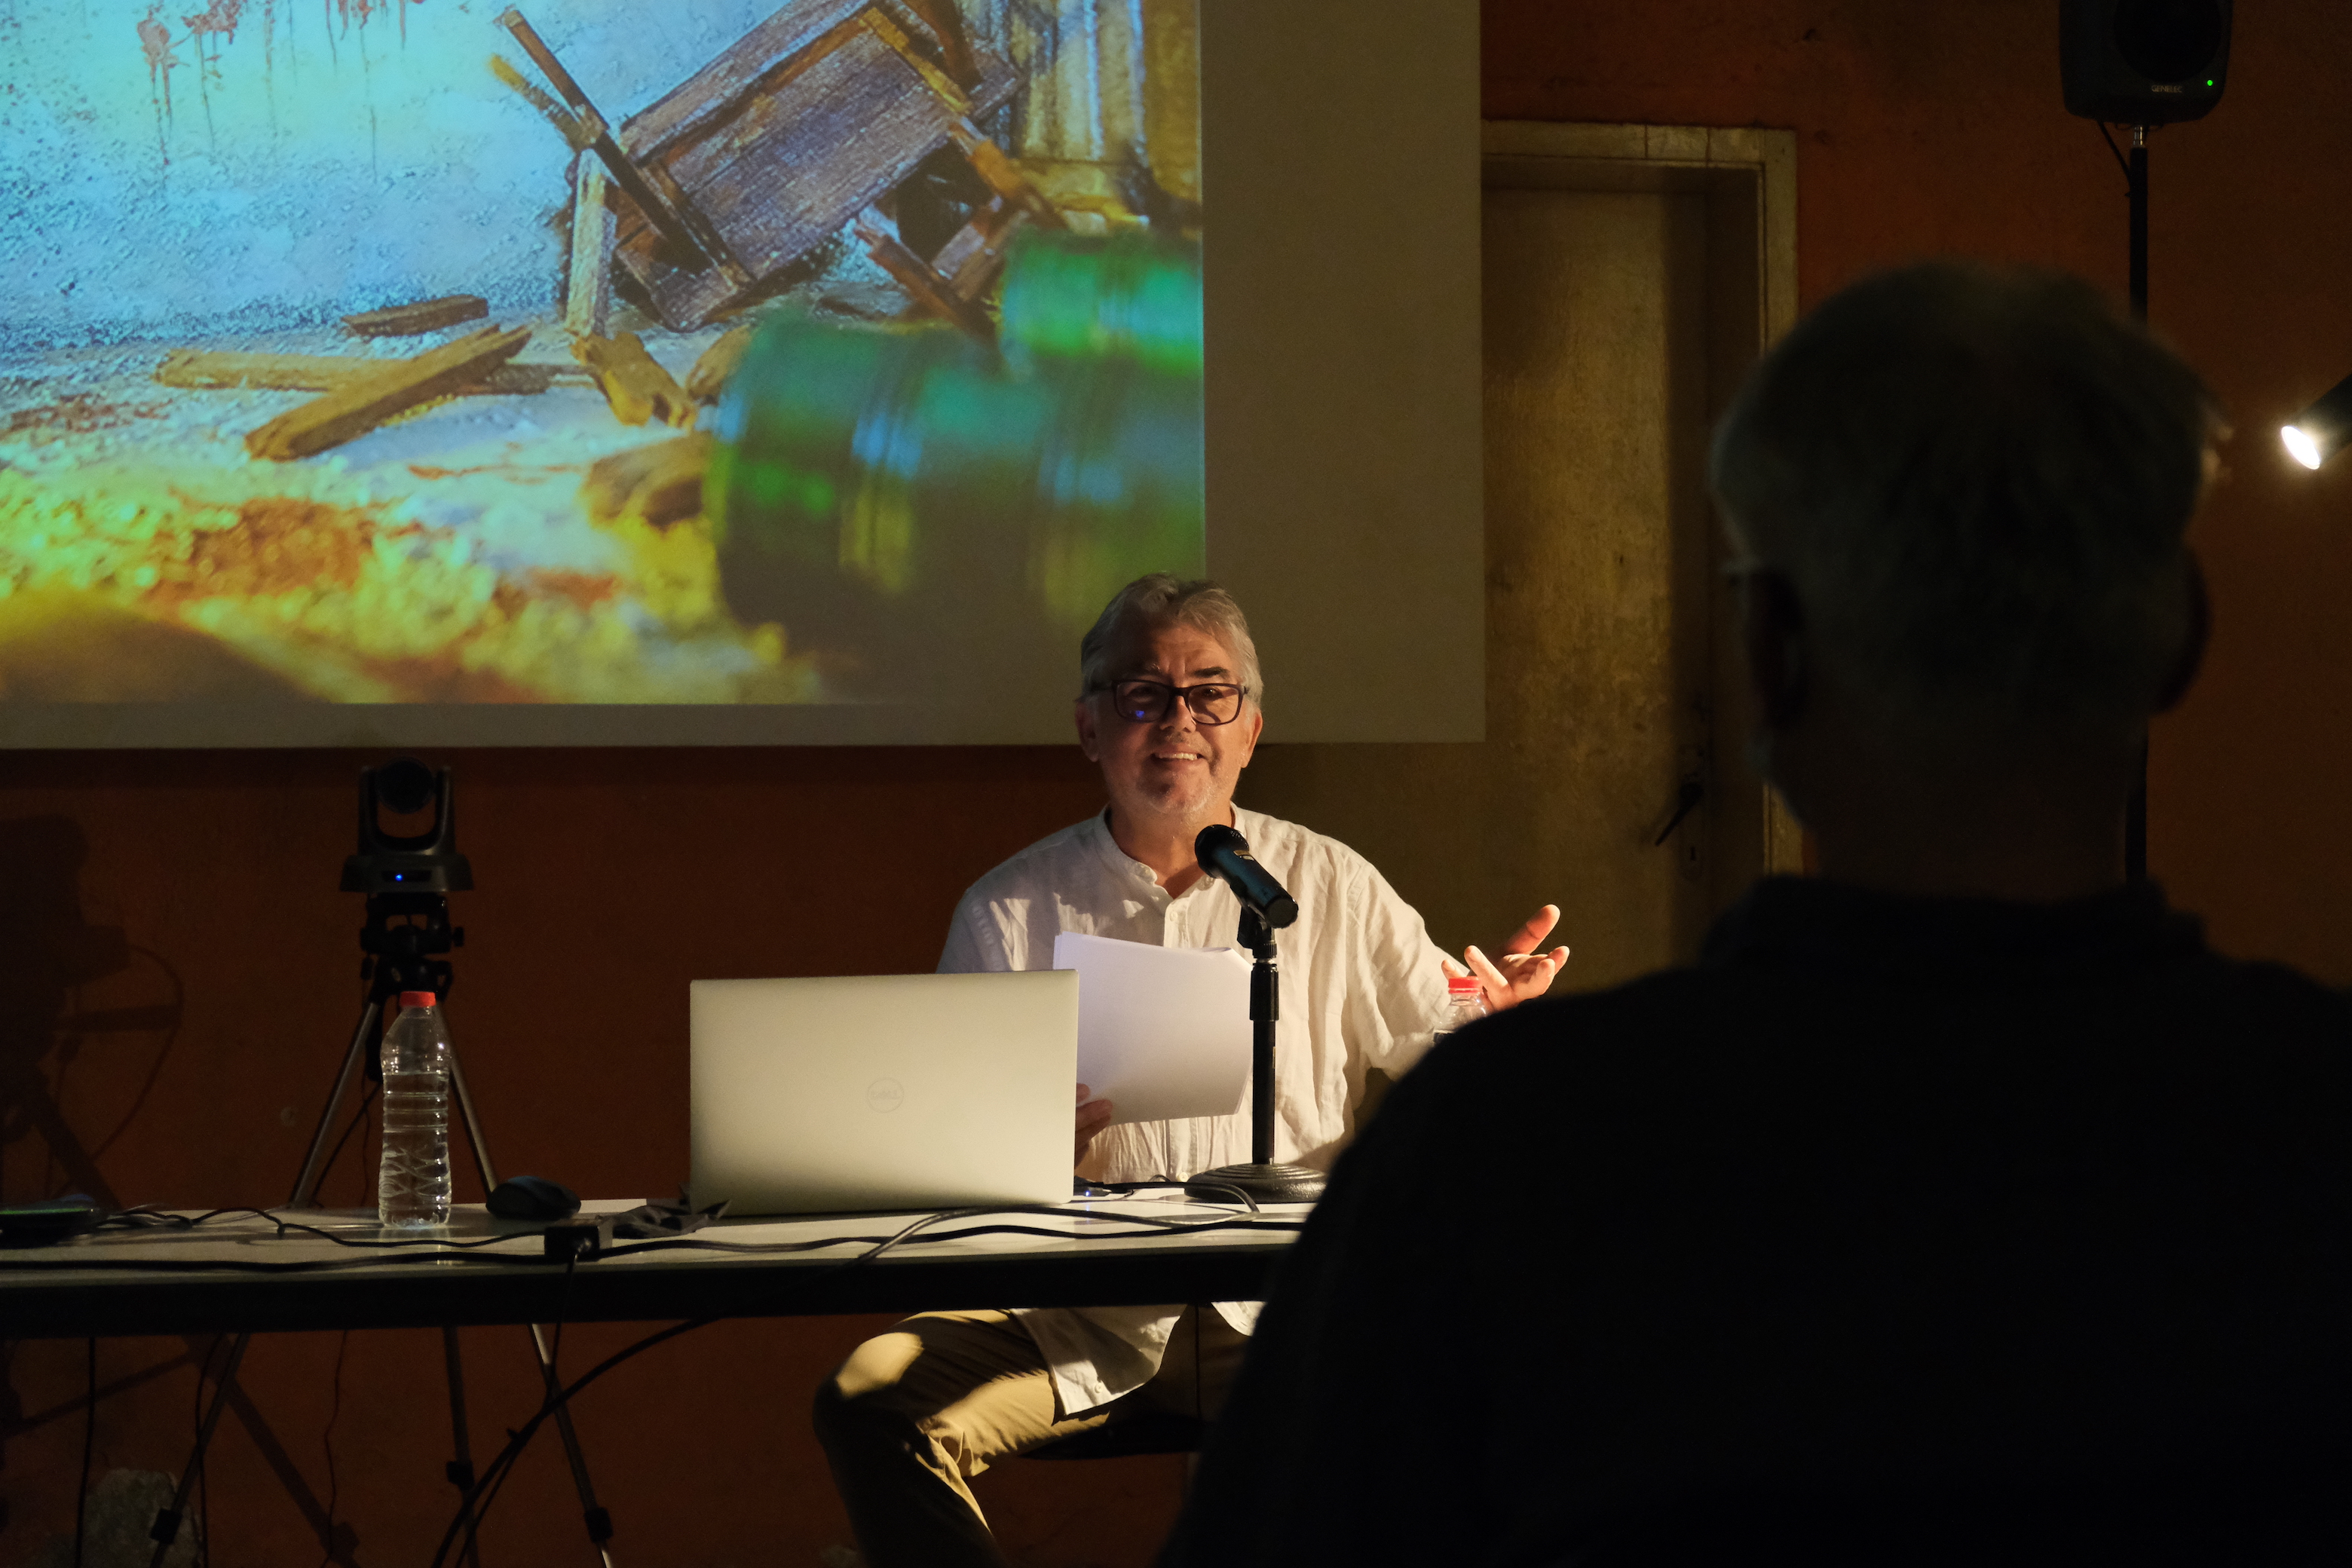 Miran Mohar: Teaching contemporary visual art practices and theories